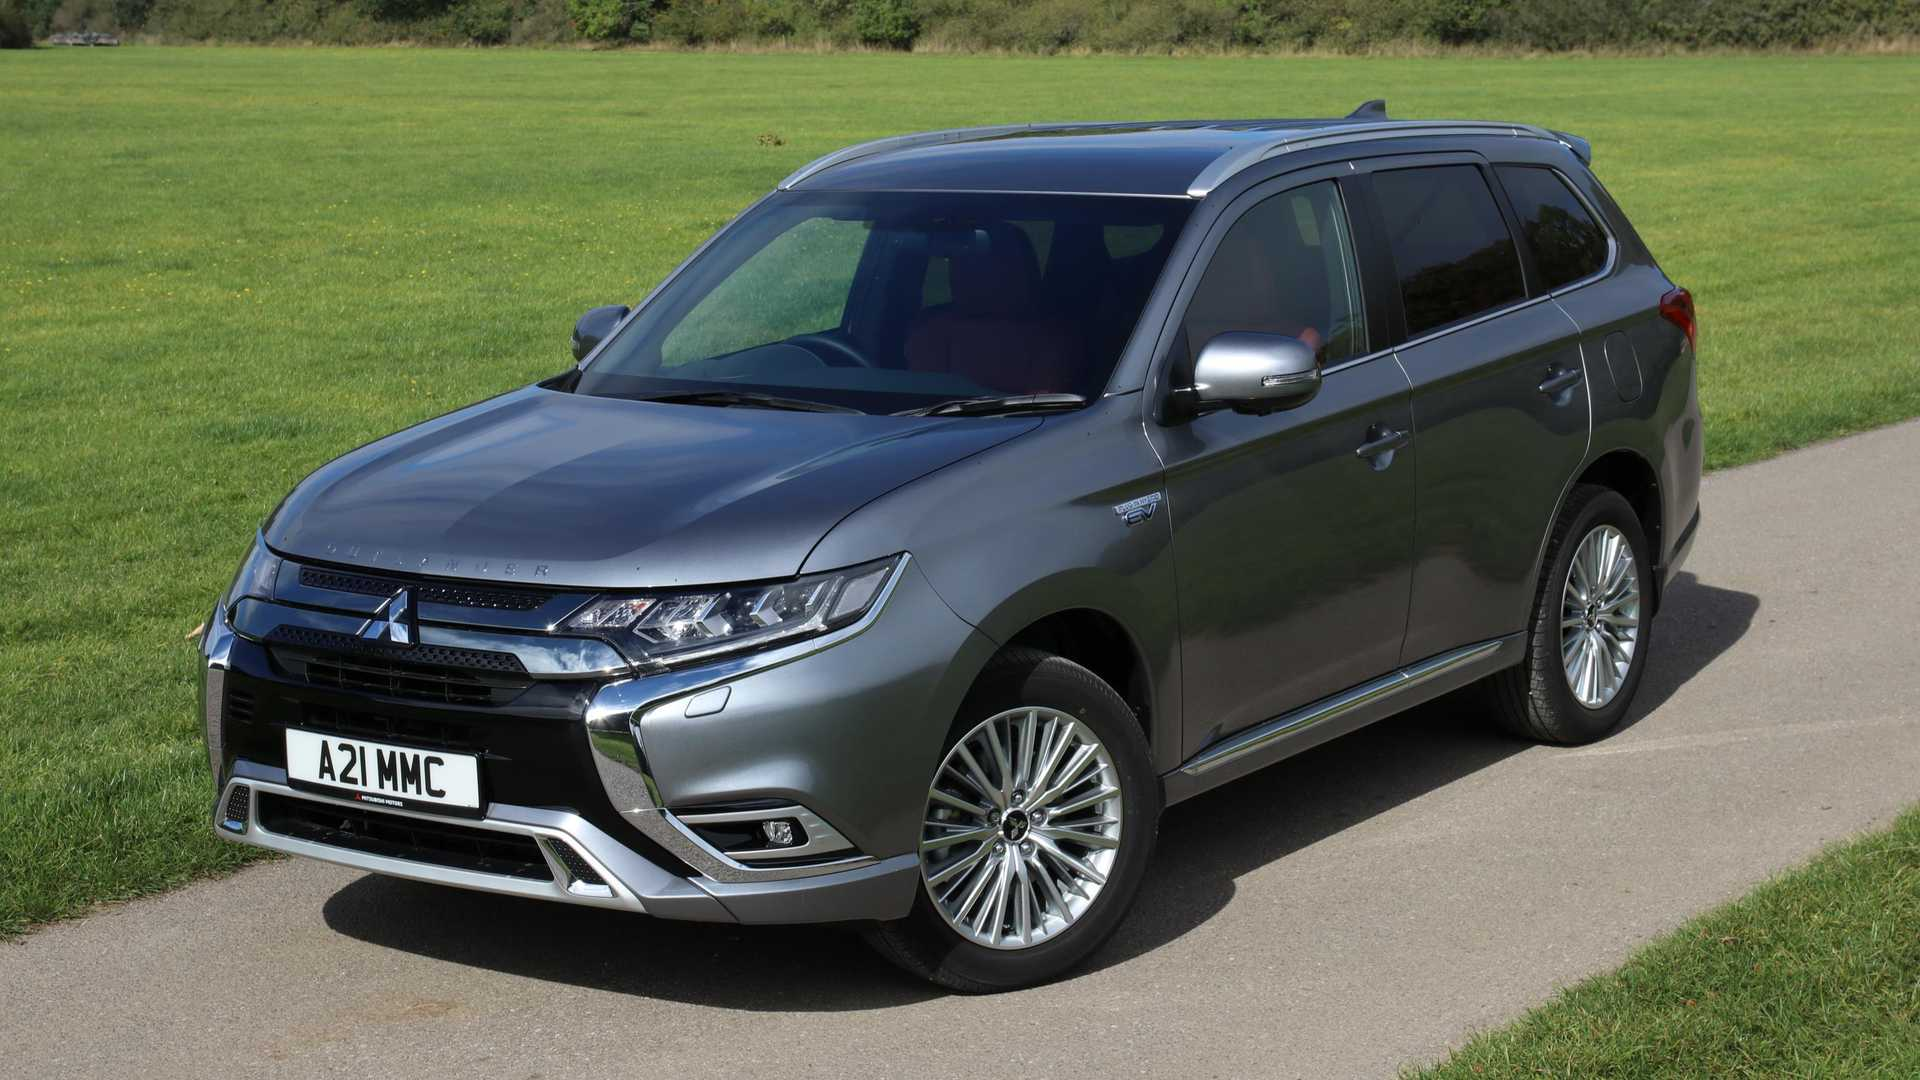 Mitsubishi Outlander PHEV Sells Well In UK Even Without Incentive